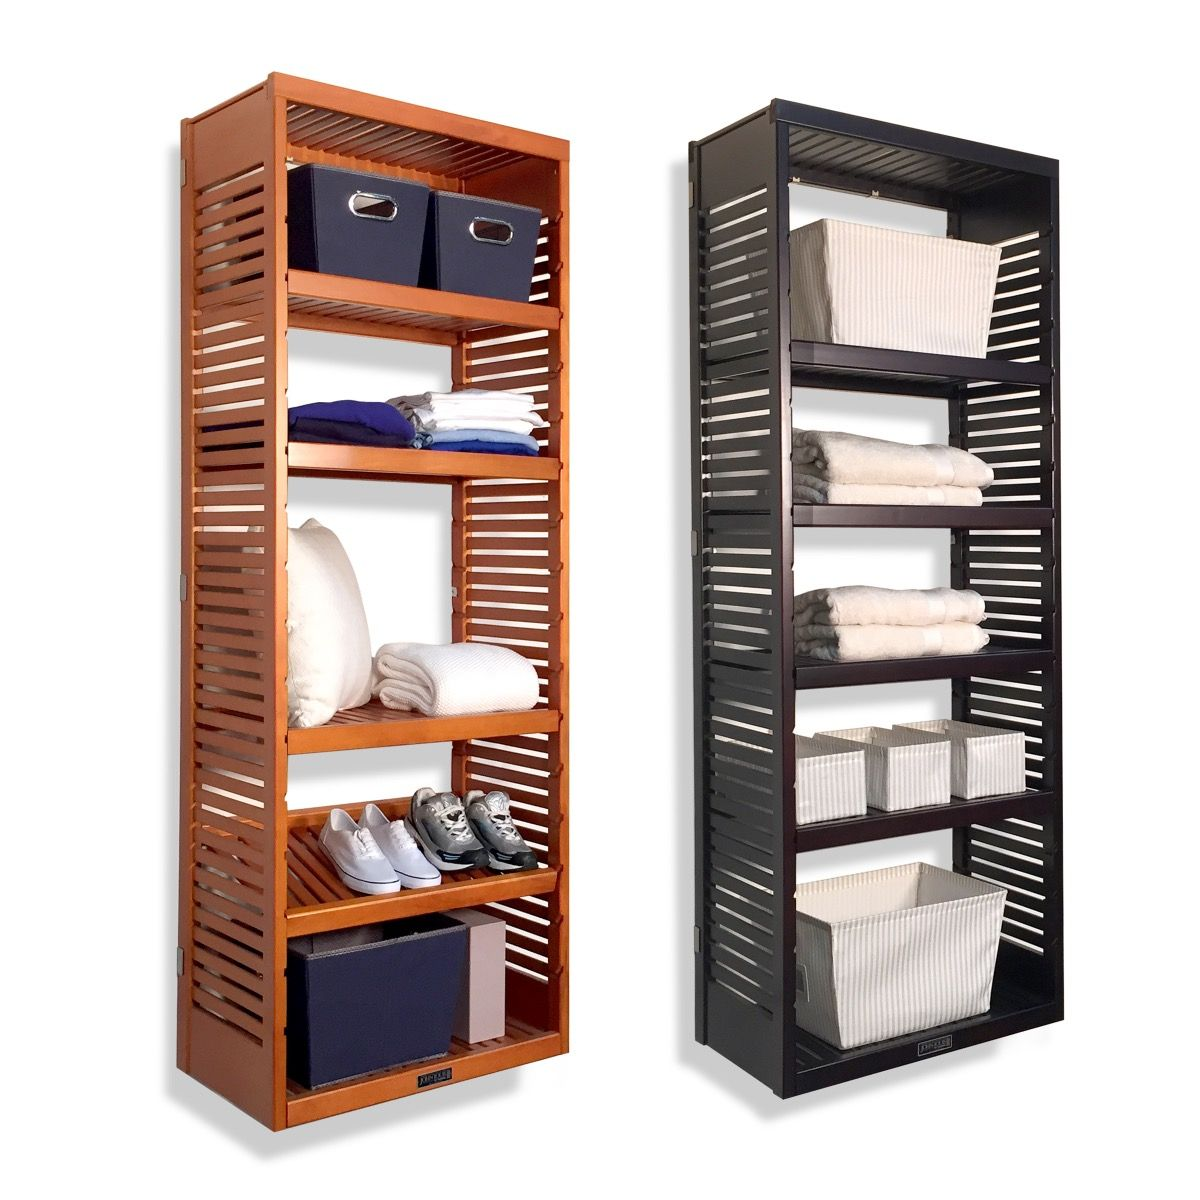 16in deep woodcrest 6ft storage tower with shelves